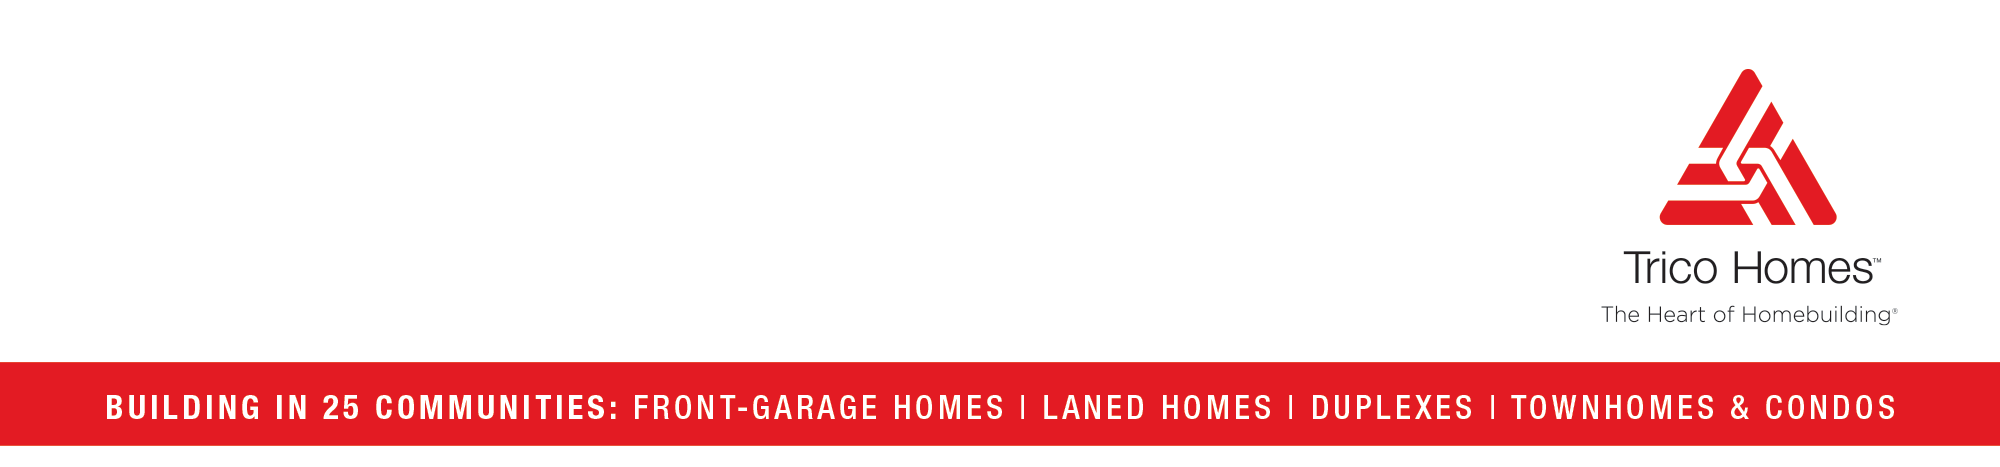 Trico Homes - Building in 25 Communities: Front Garage - Laned Homes - Duplexes - Townhomes & Condos